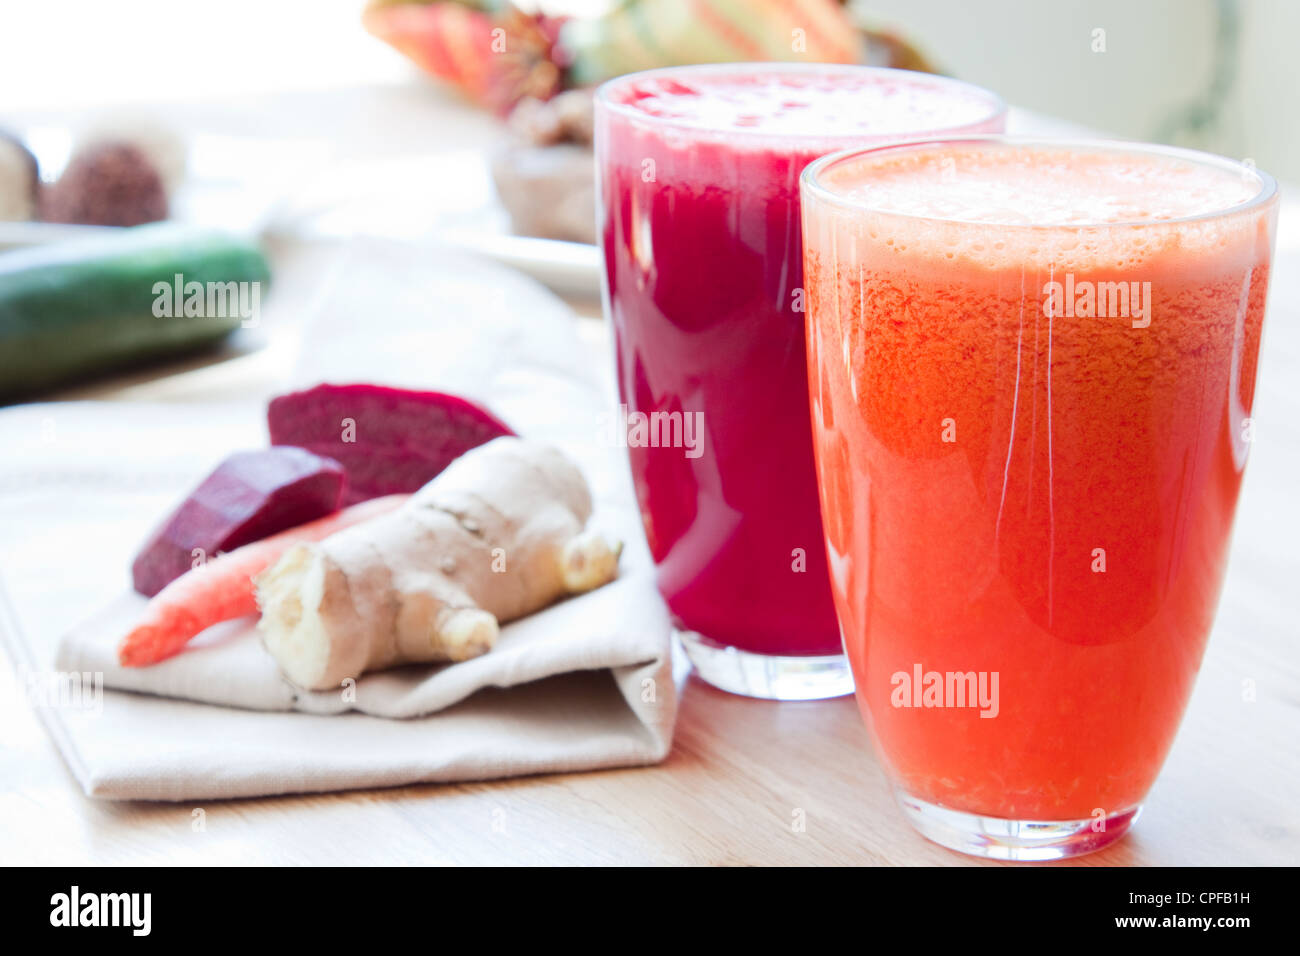 Two glasses of healthy juice - Beet, Apple, Carrot, Ginger and Orange, Apple, Pineapple. Ingredients in the background. - Stock Image